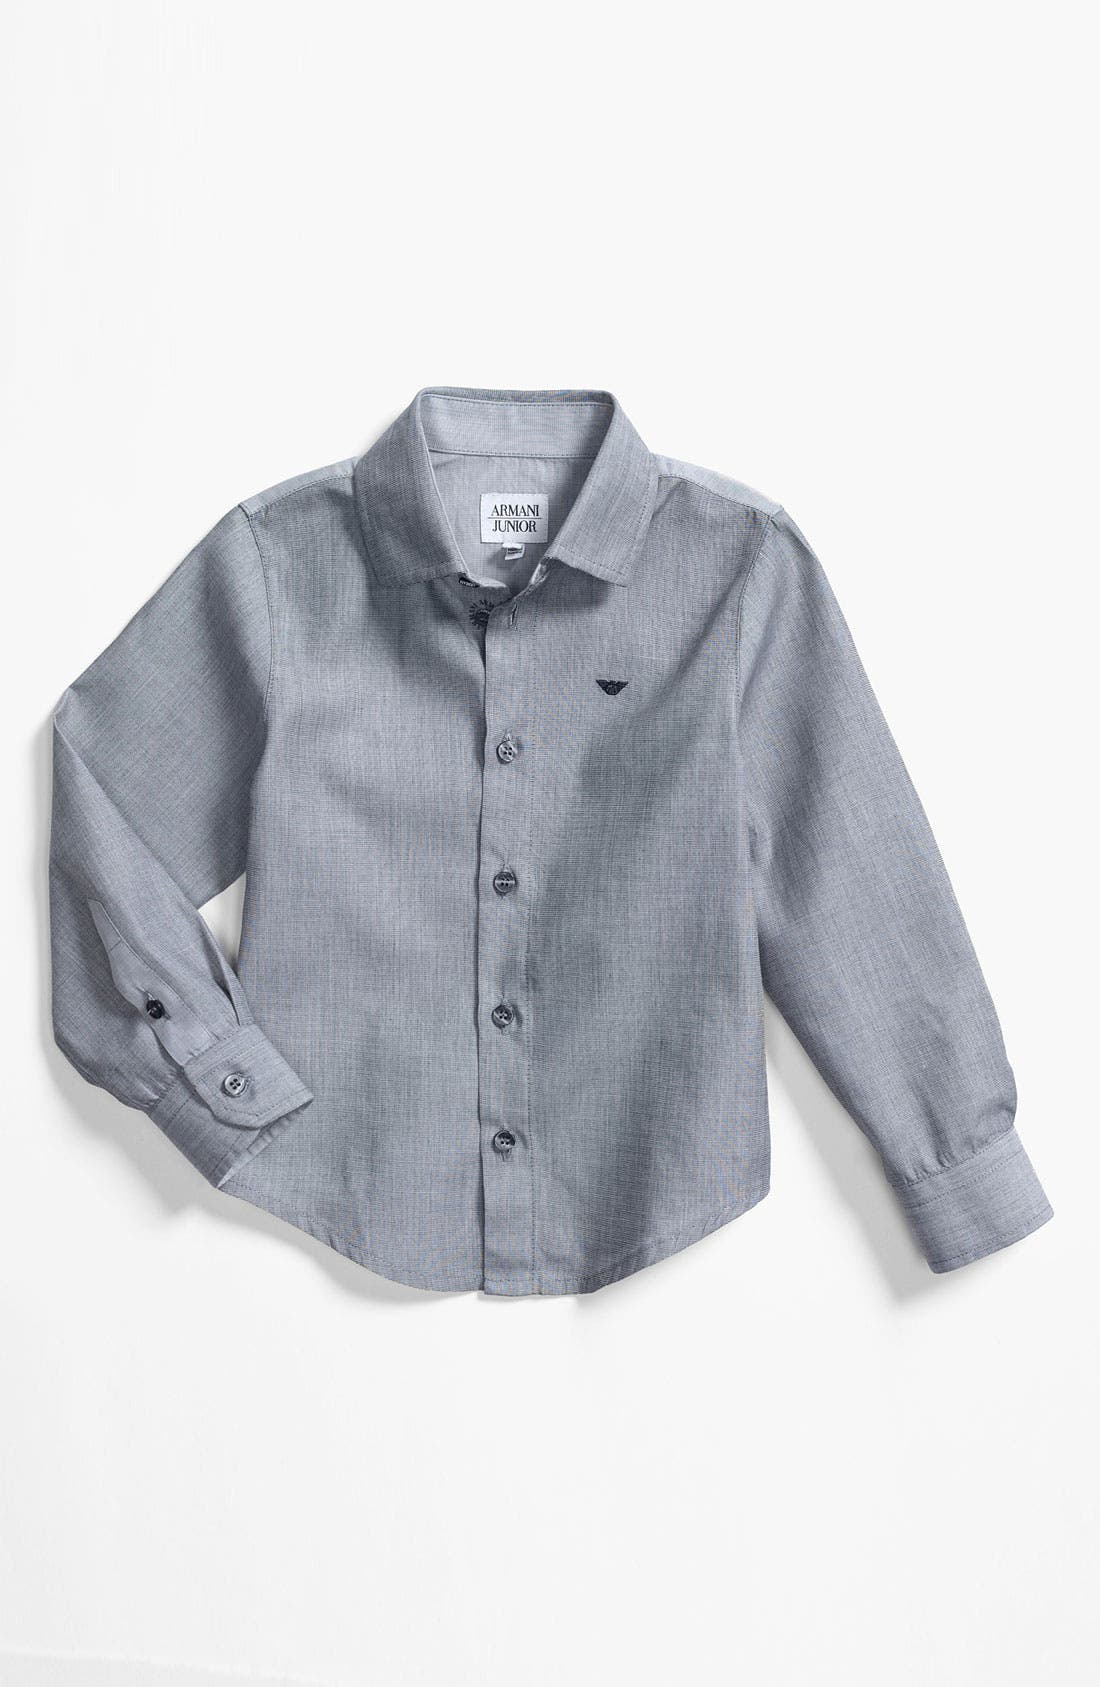 Alternate Image 1 Selected - Armani Junior Dress Shirt (Little Boys)